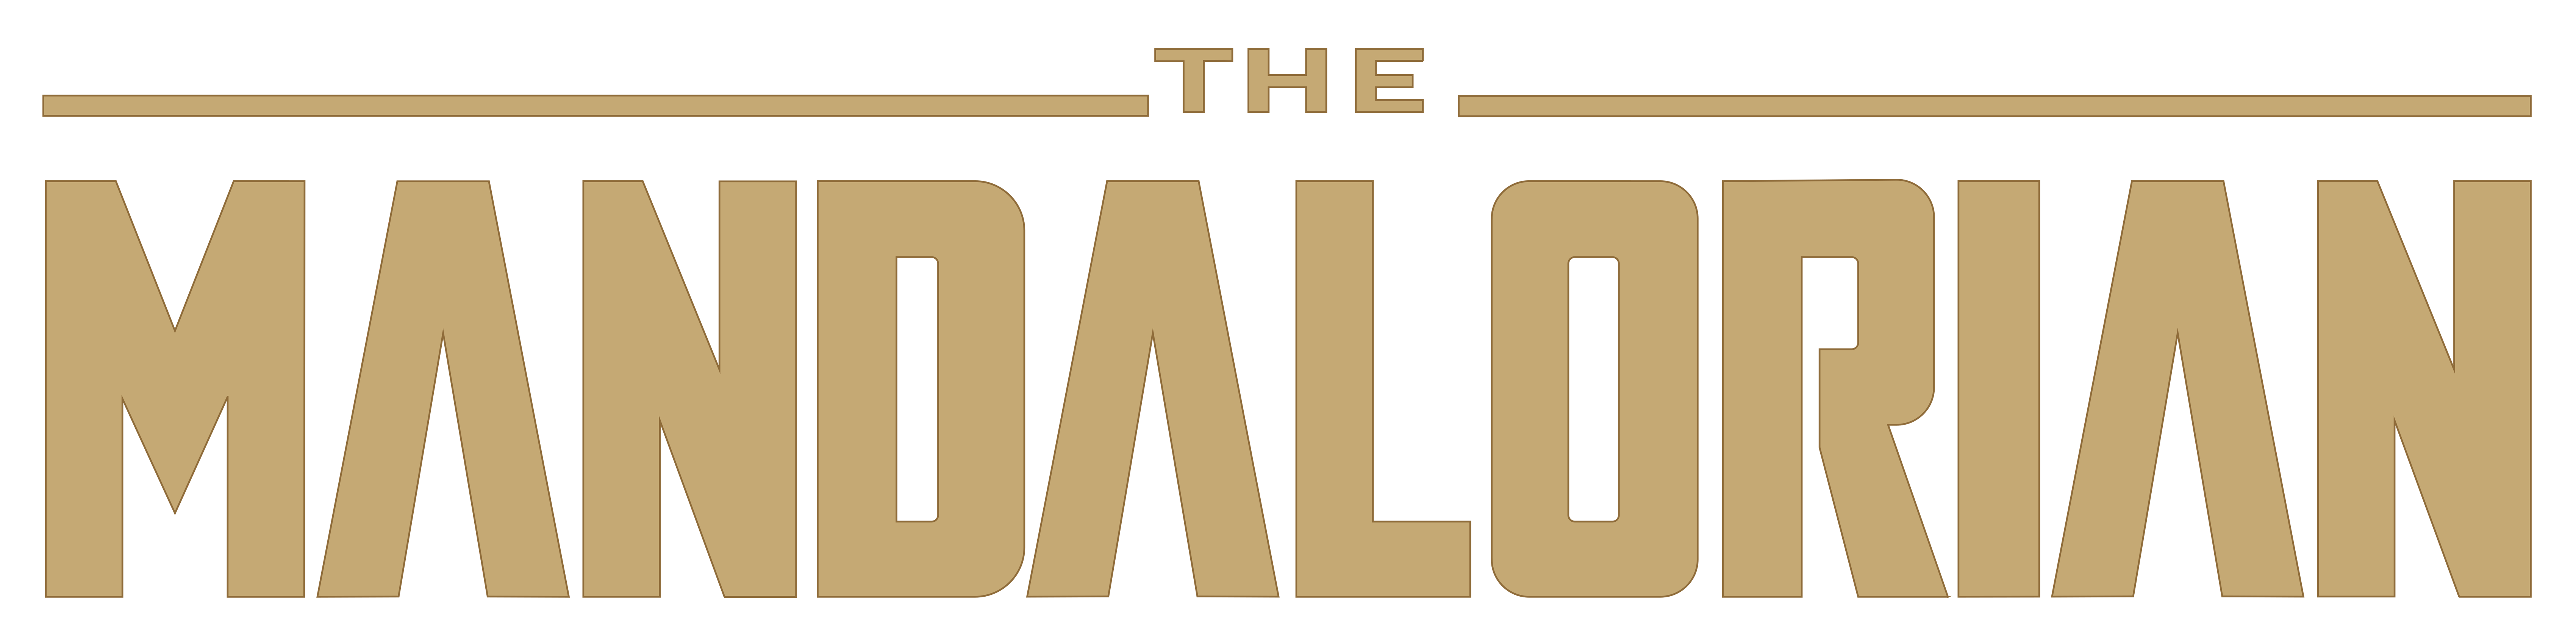 The-Mandalorian-logo.png